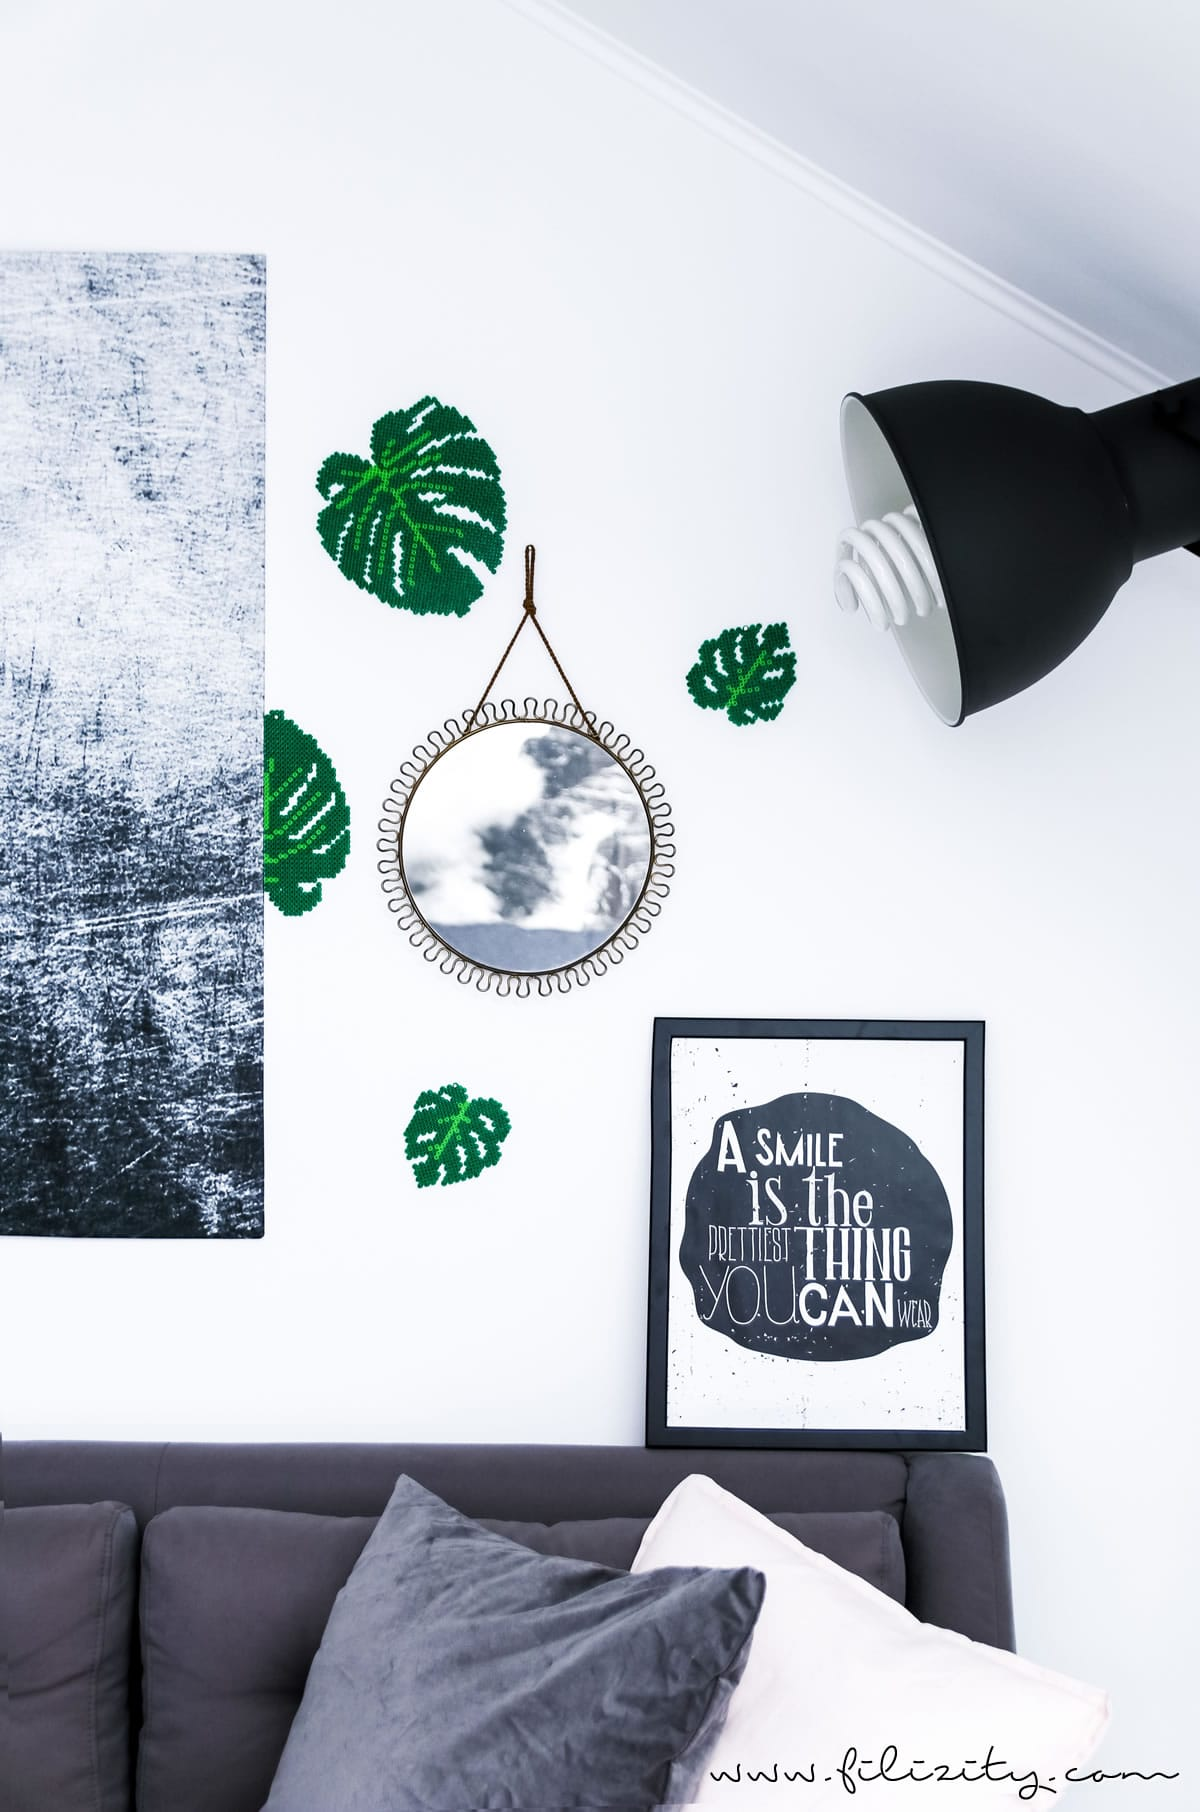 DIY Urban Jungle: Bügelperlen-Monstera - Just Bead It! #bügelperlen #monstera